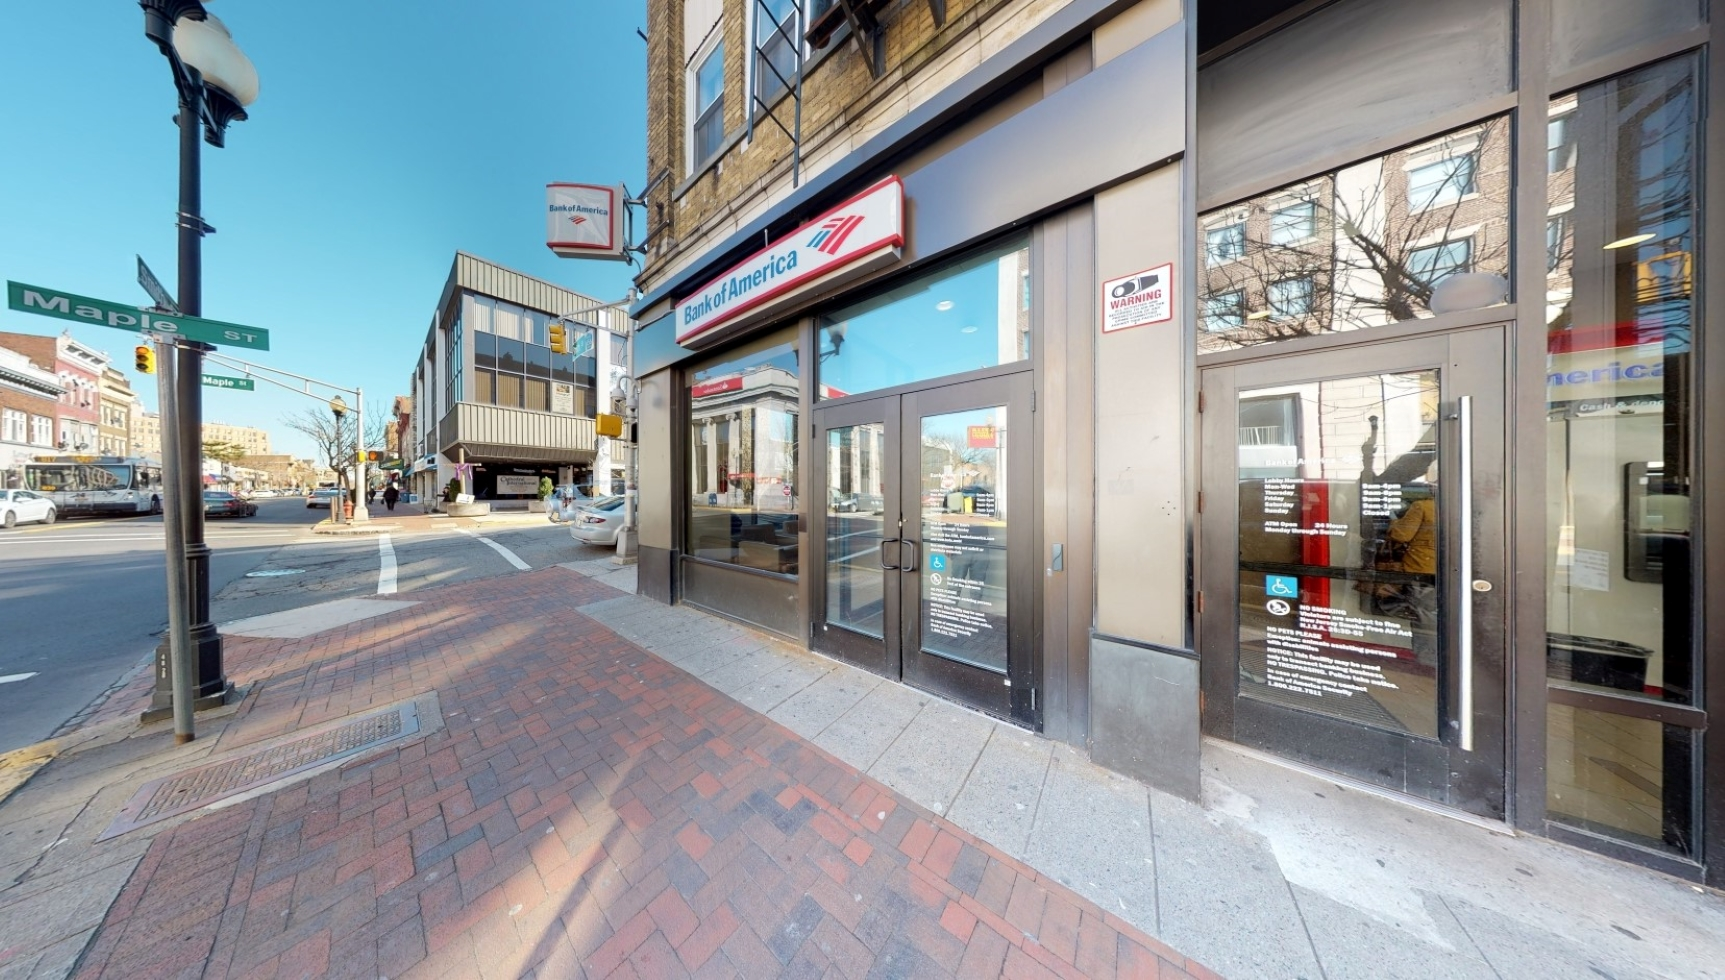 Bank of America financial center with walk-up ATM | 211 Smith St, Perth Amboy, NJ 08861